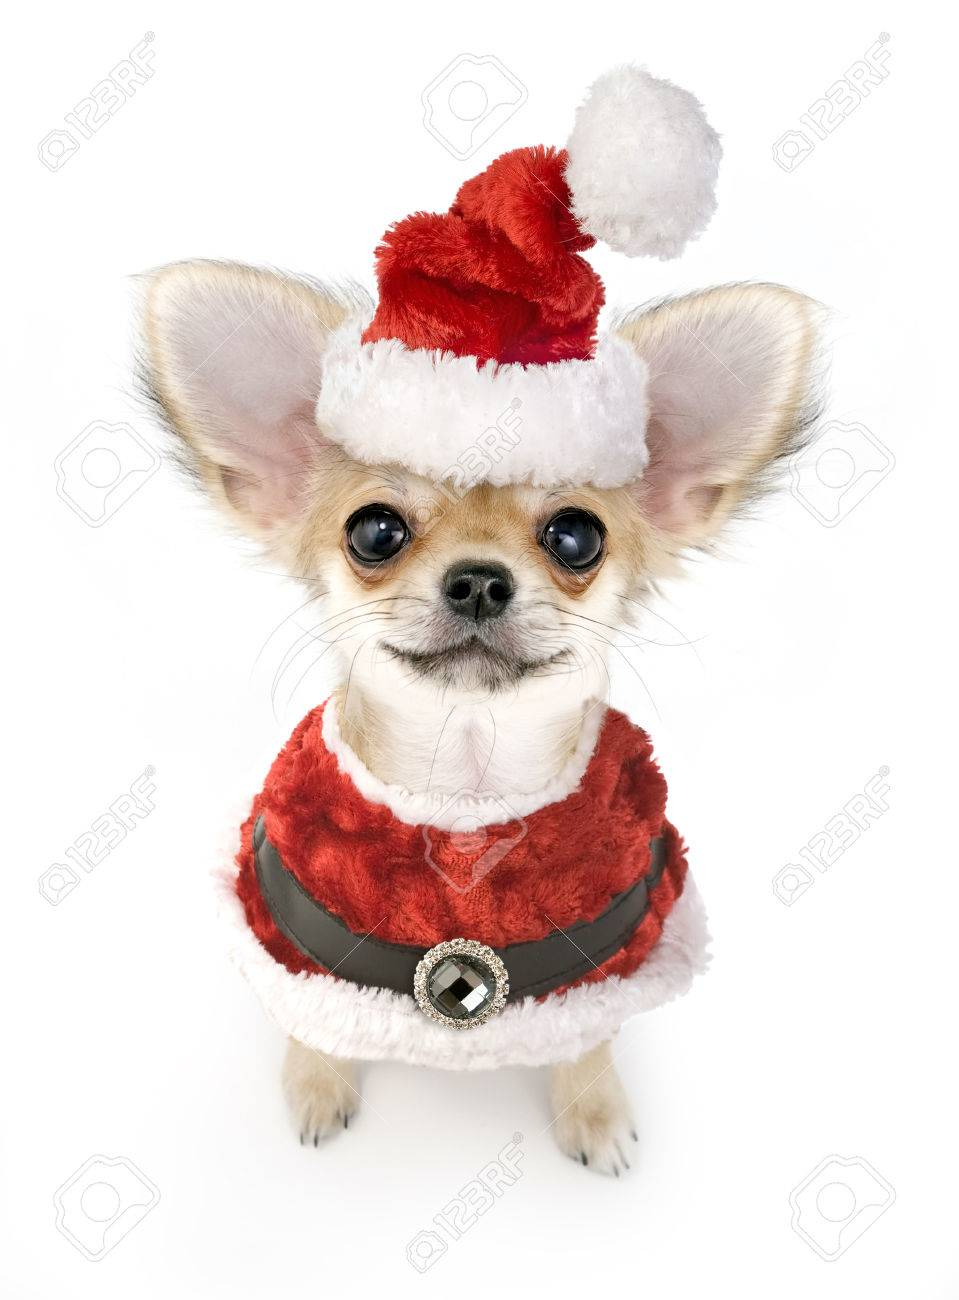 Christmas chihuahua puppy with Santa costume isolated on white background Stock Photo - 23486052  sc 1 st  123RF.com & Christmas Chihuahua Puppy With Santa Costume Isolated On White ...